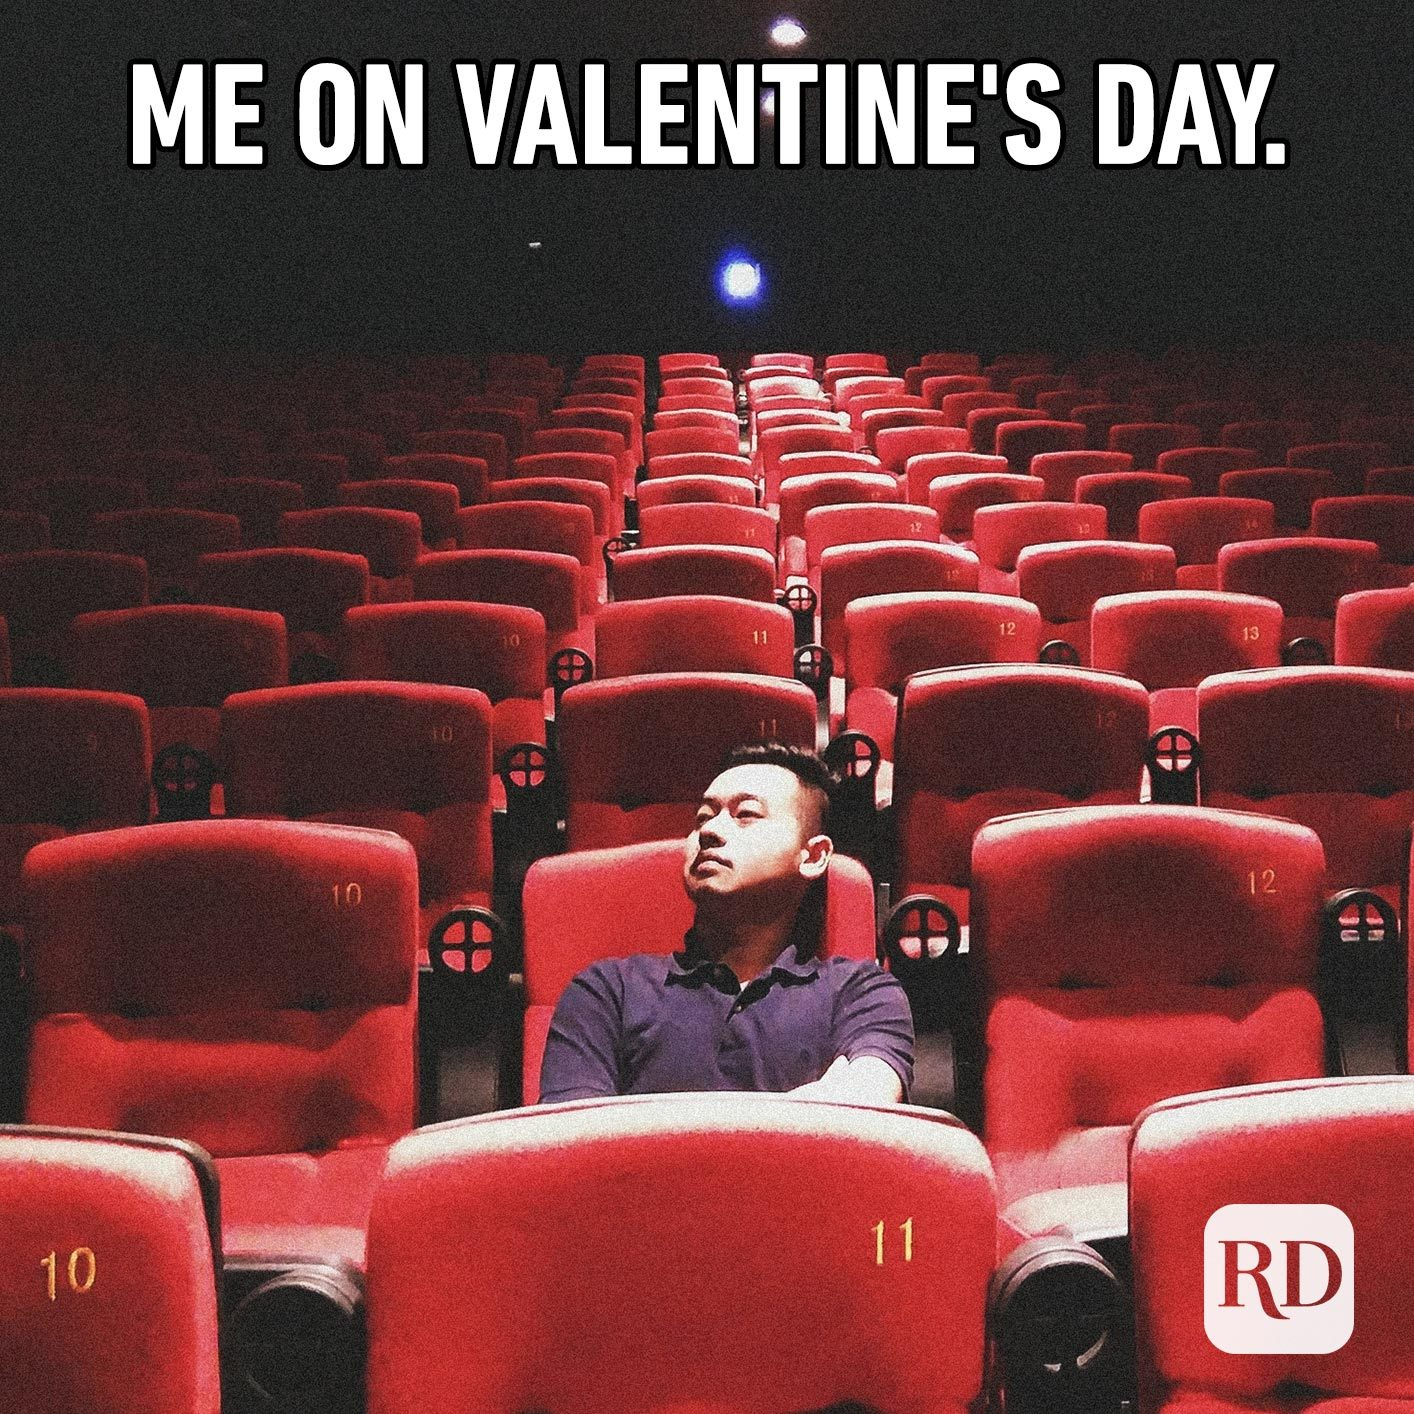 Man alone in movie theater. Meme text: Me on Valentine's Day.